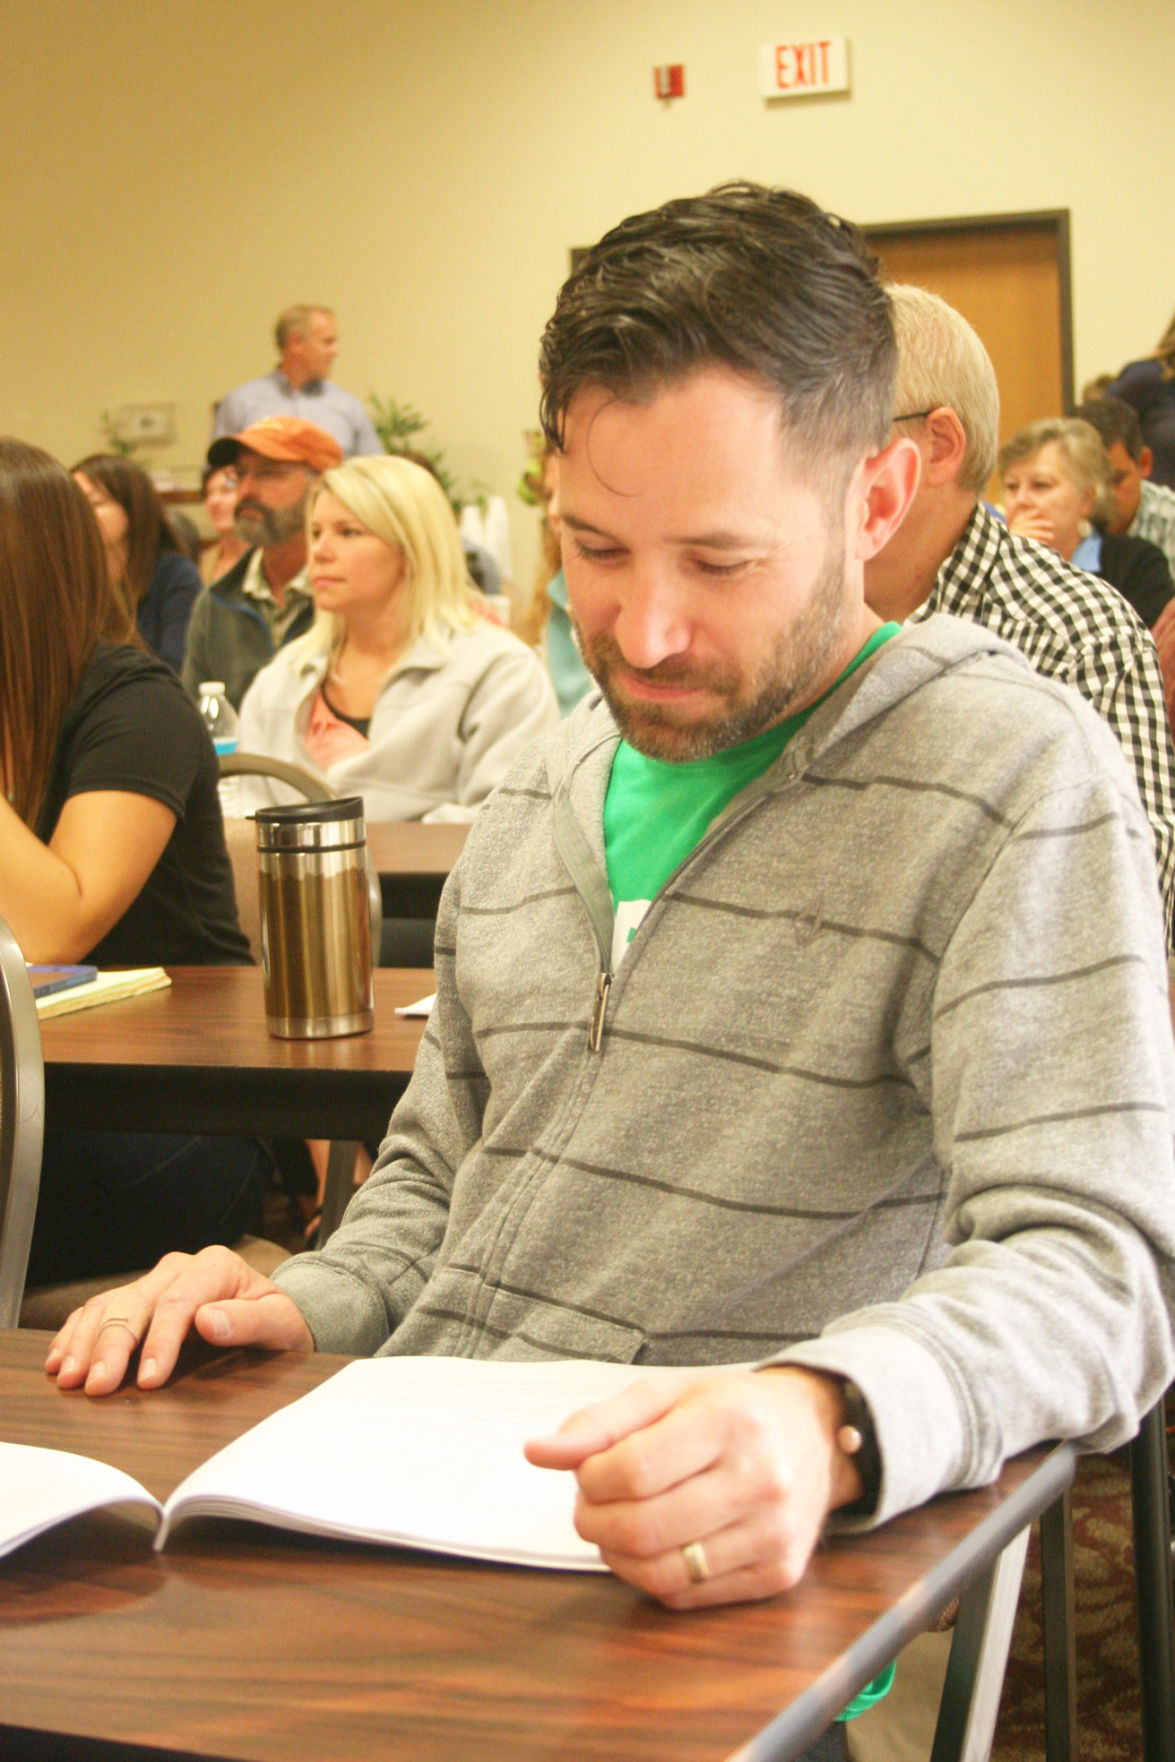 Continuing education: Teachers learn about Professional Learning Communities concept